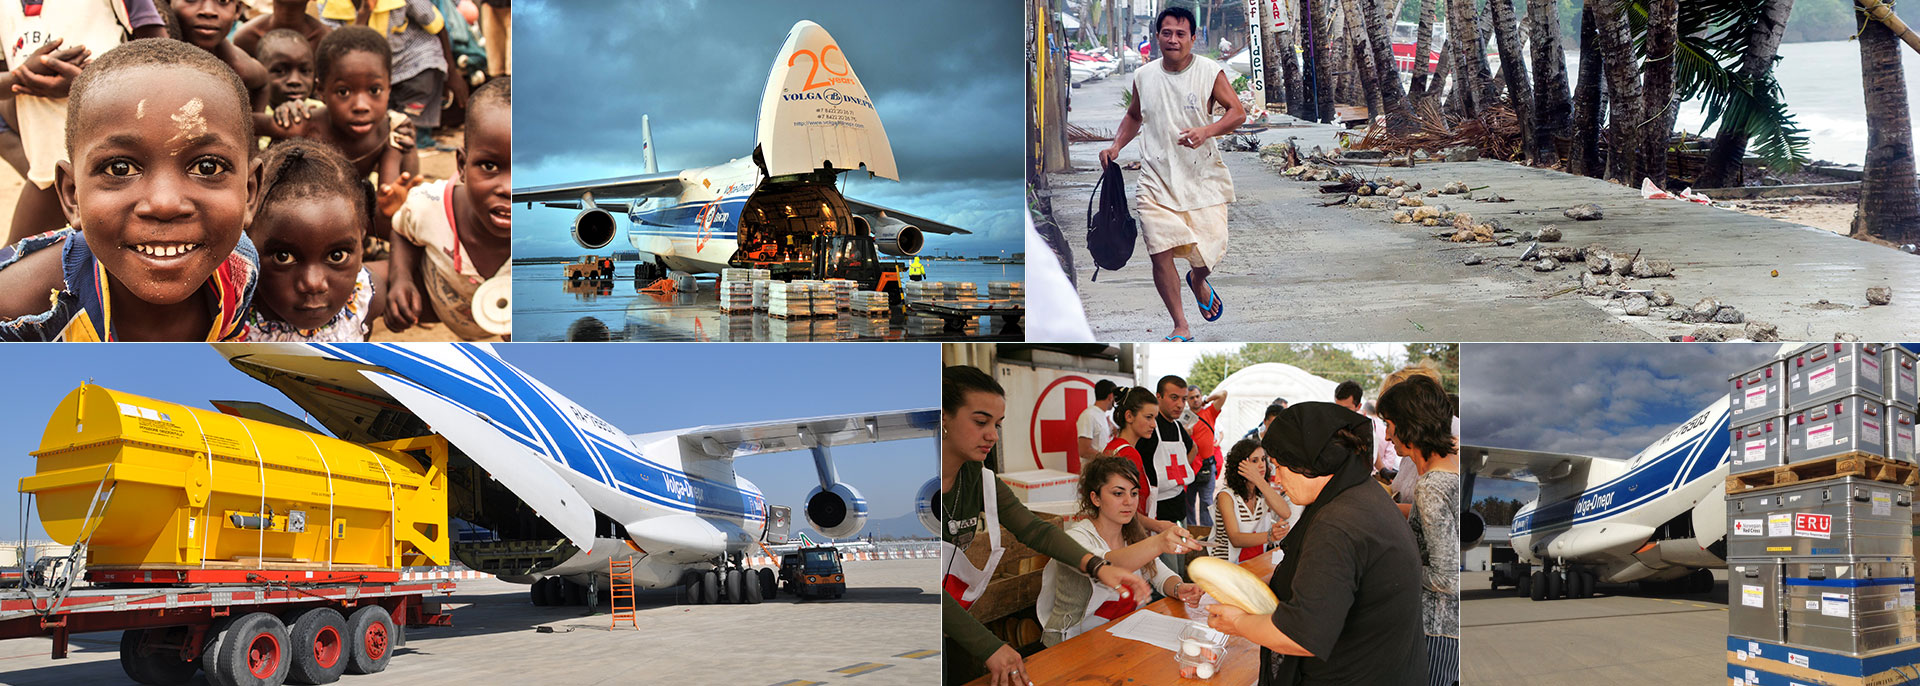 Experts in Humanitaian Aid Delivery worldwide